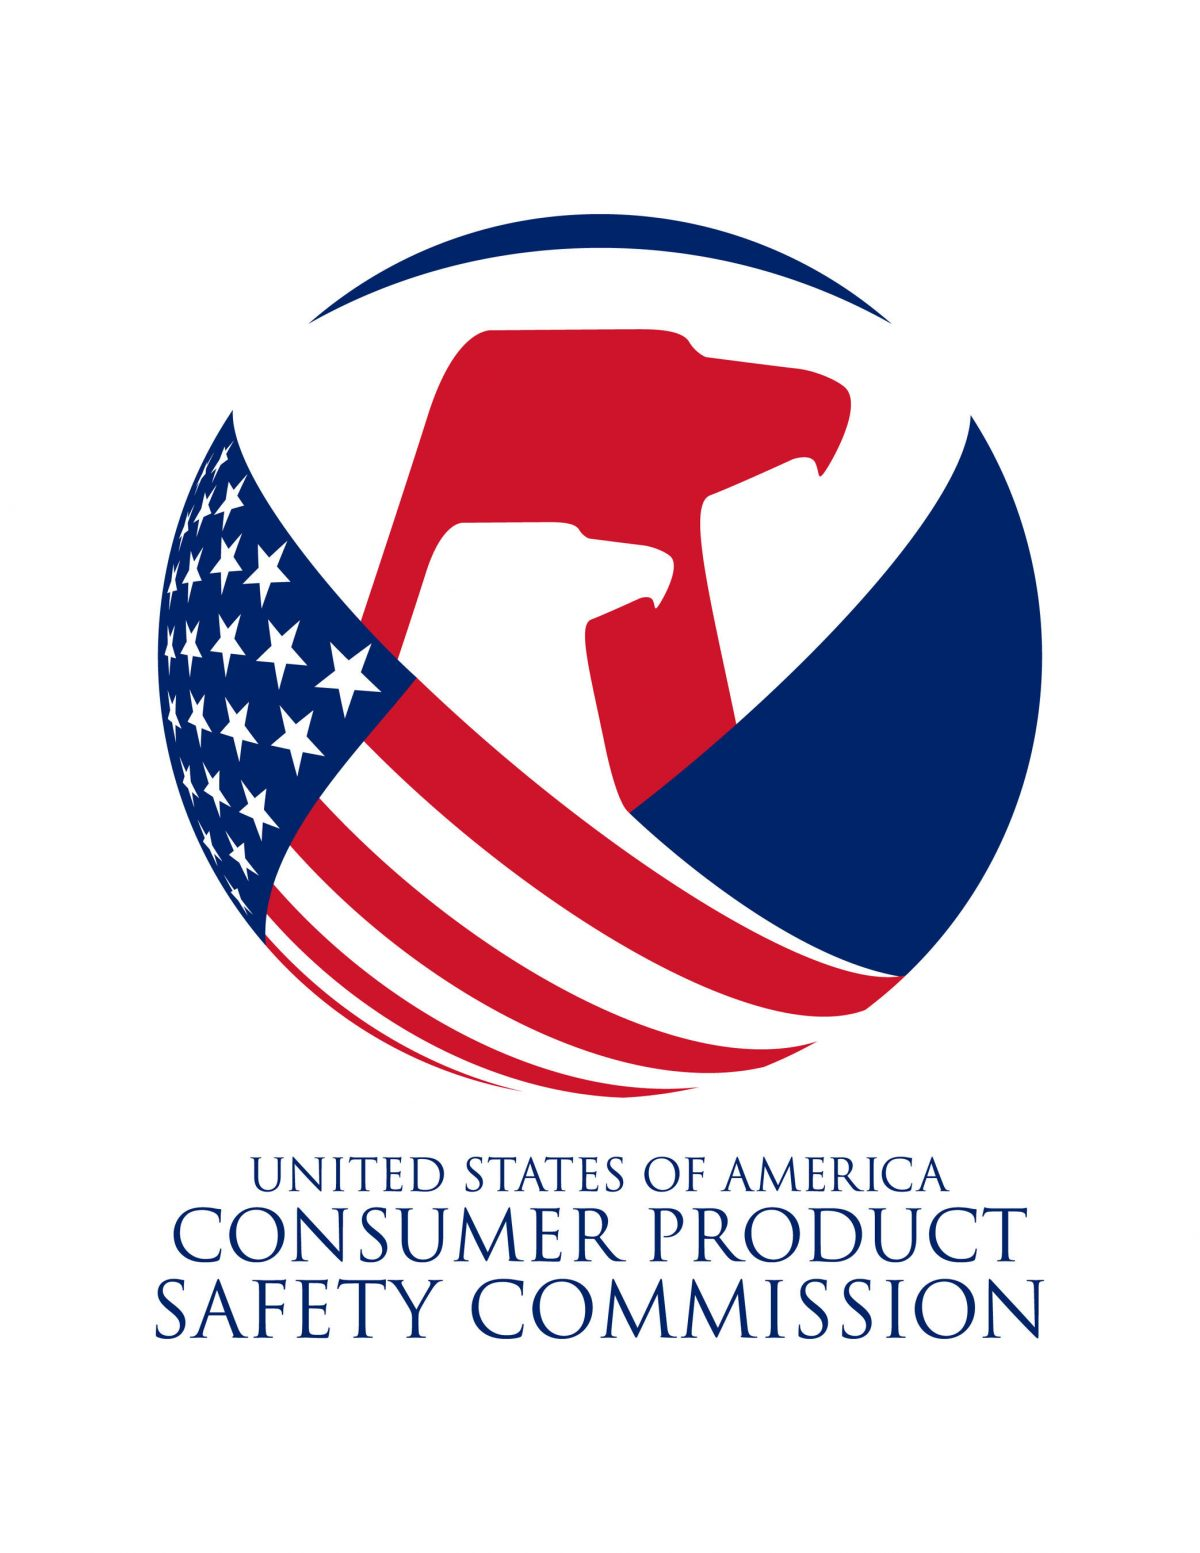 CPSC Posts Recall to its Web Site